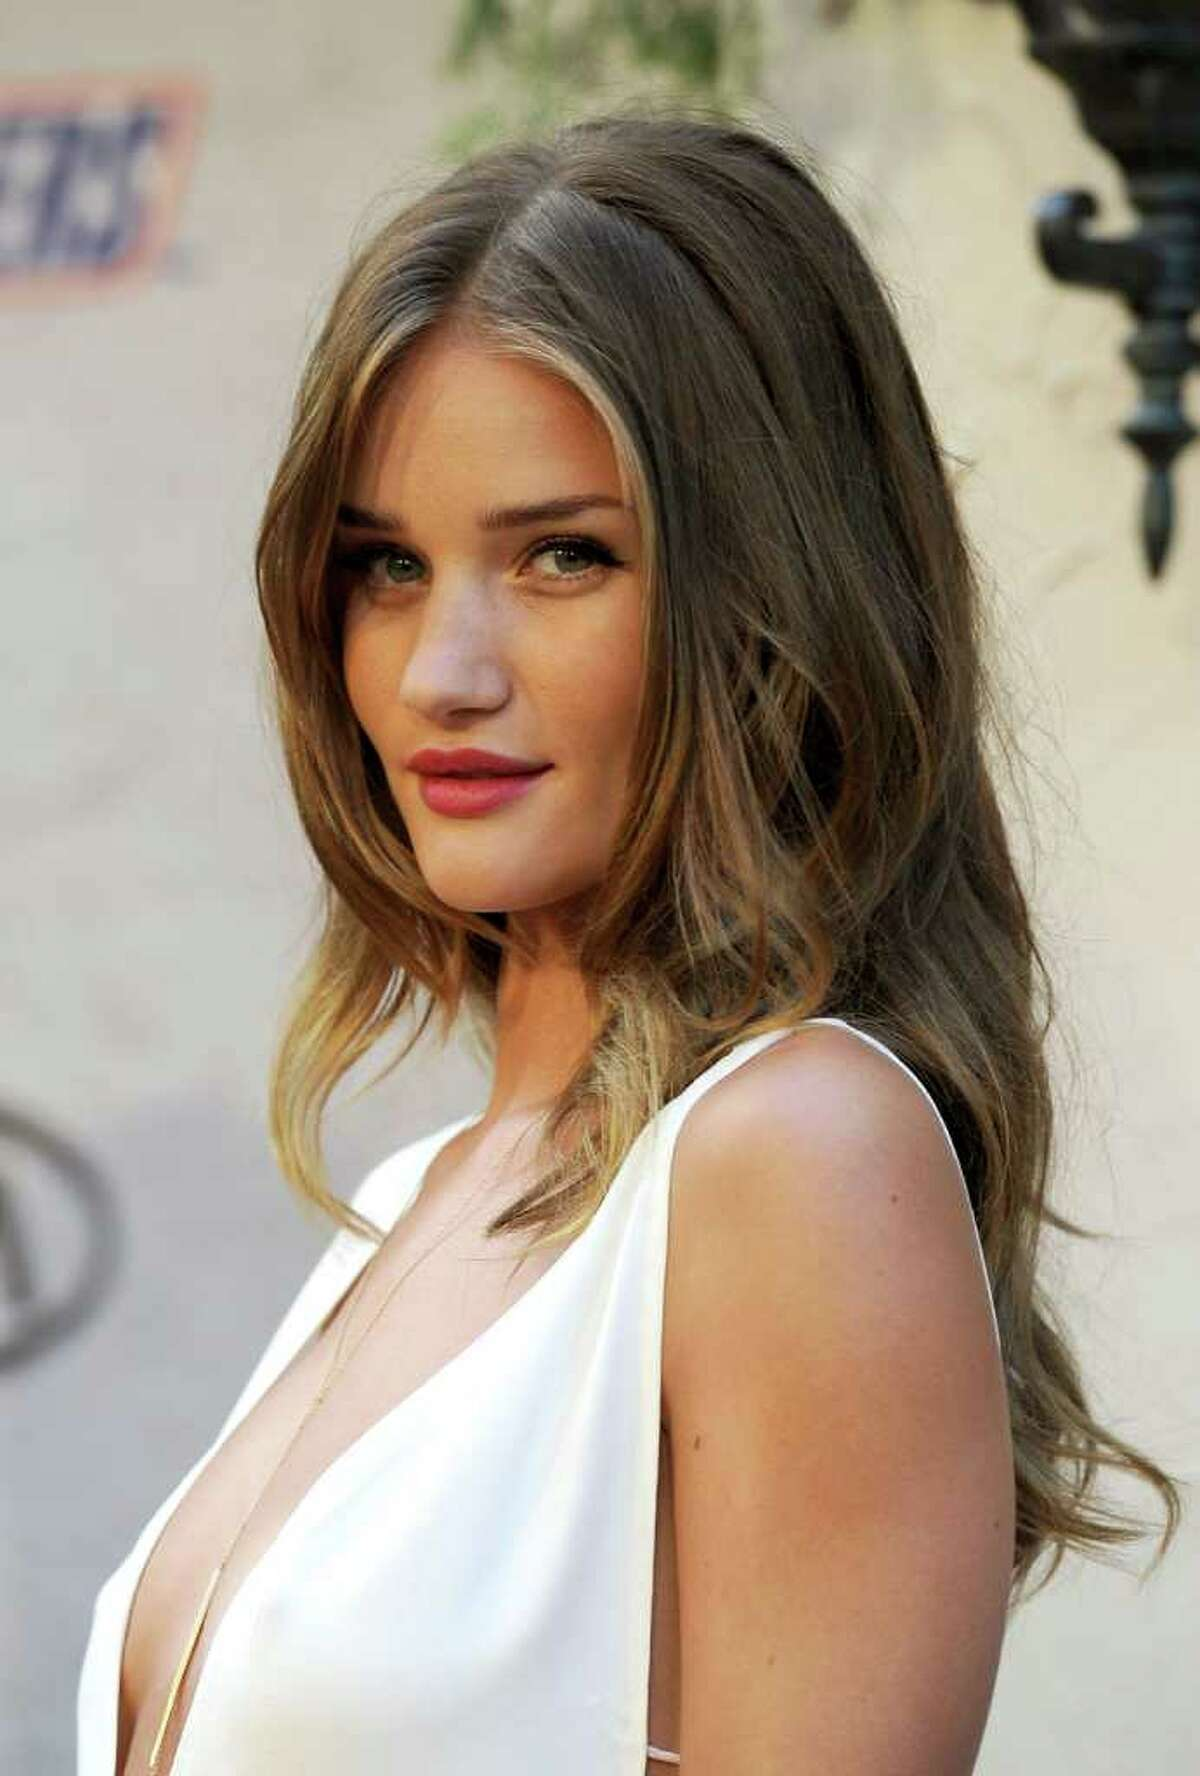 ... here's British model Rosie Huntingdon-Whitley, who replaced Fox in the latest